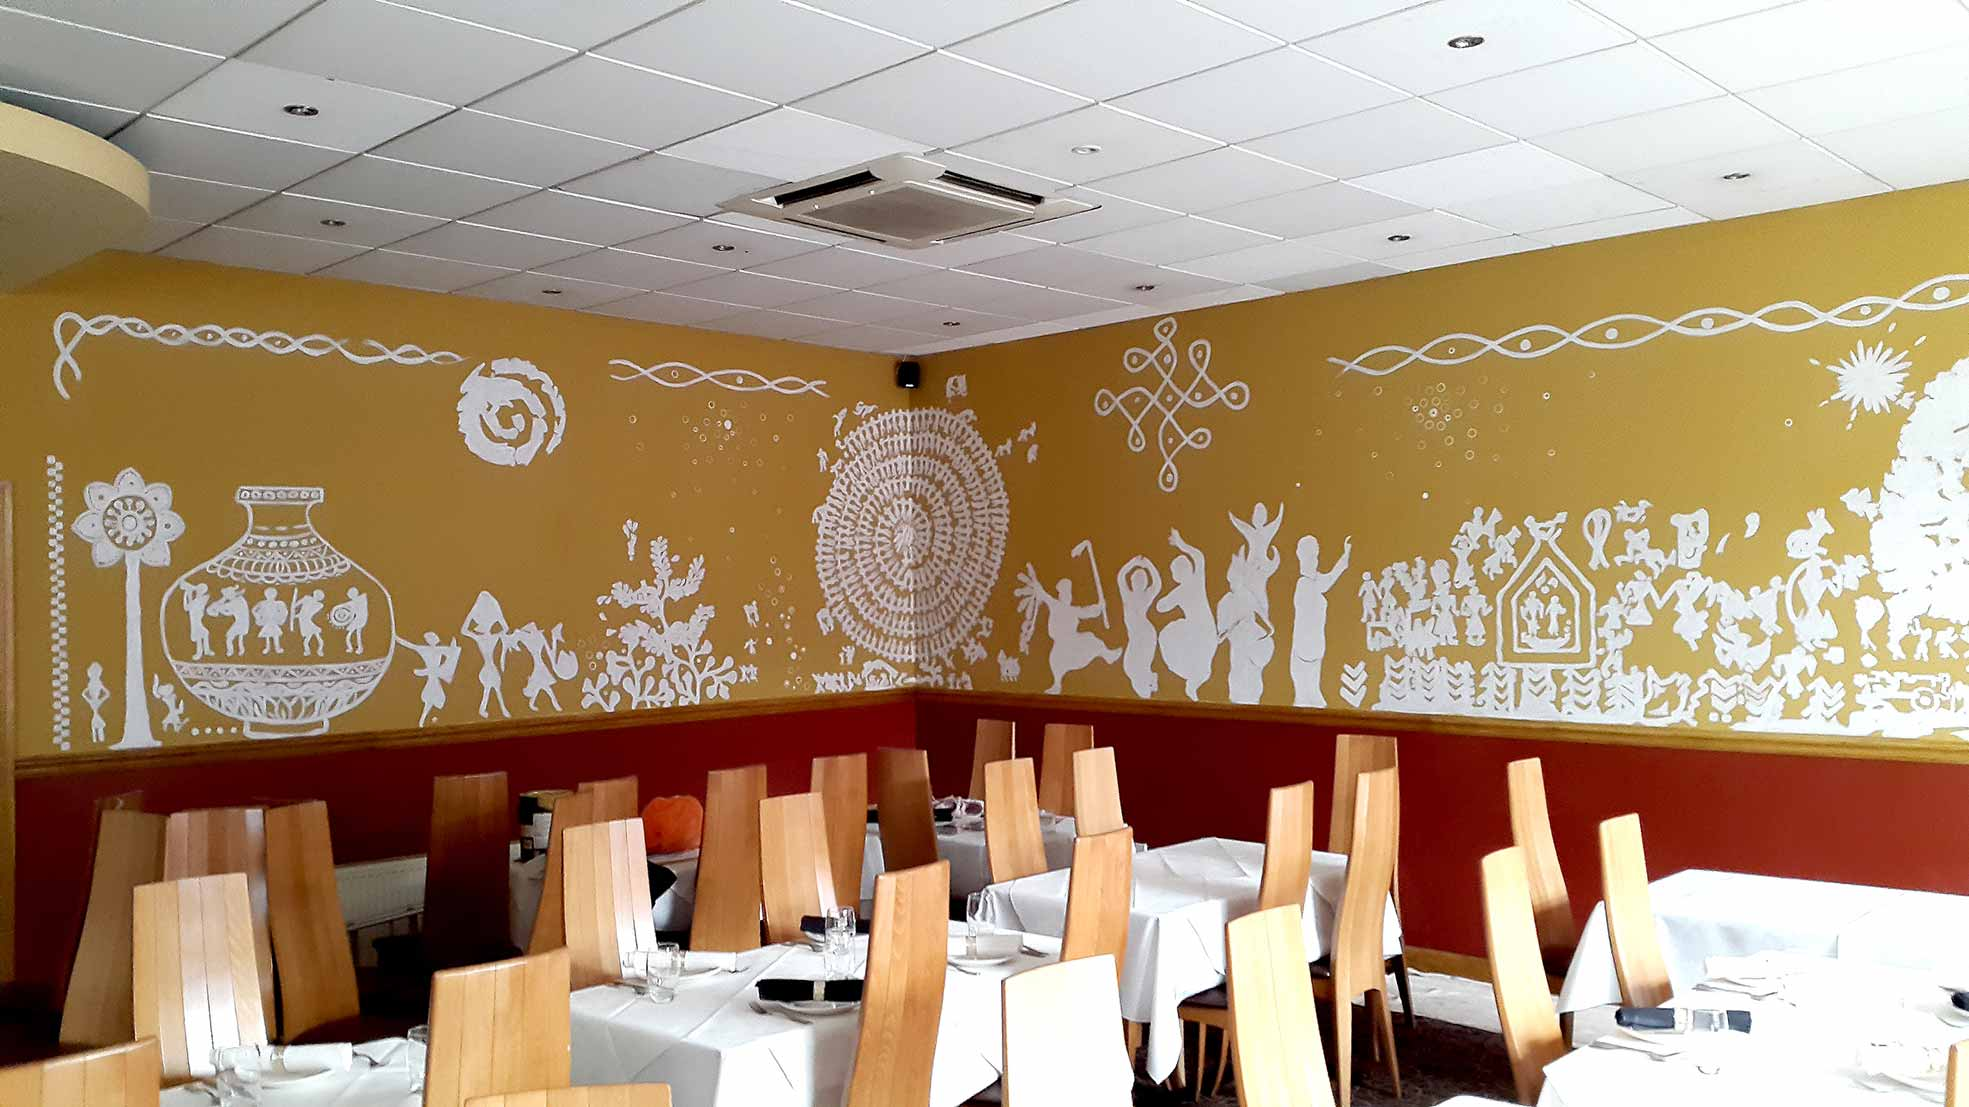 Murals and public art glartique for Cafe wall mural